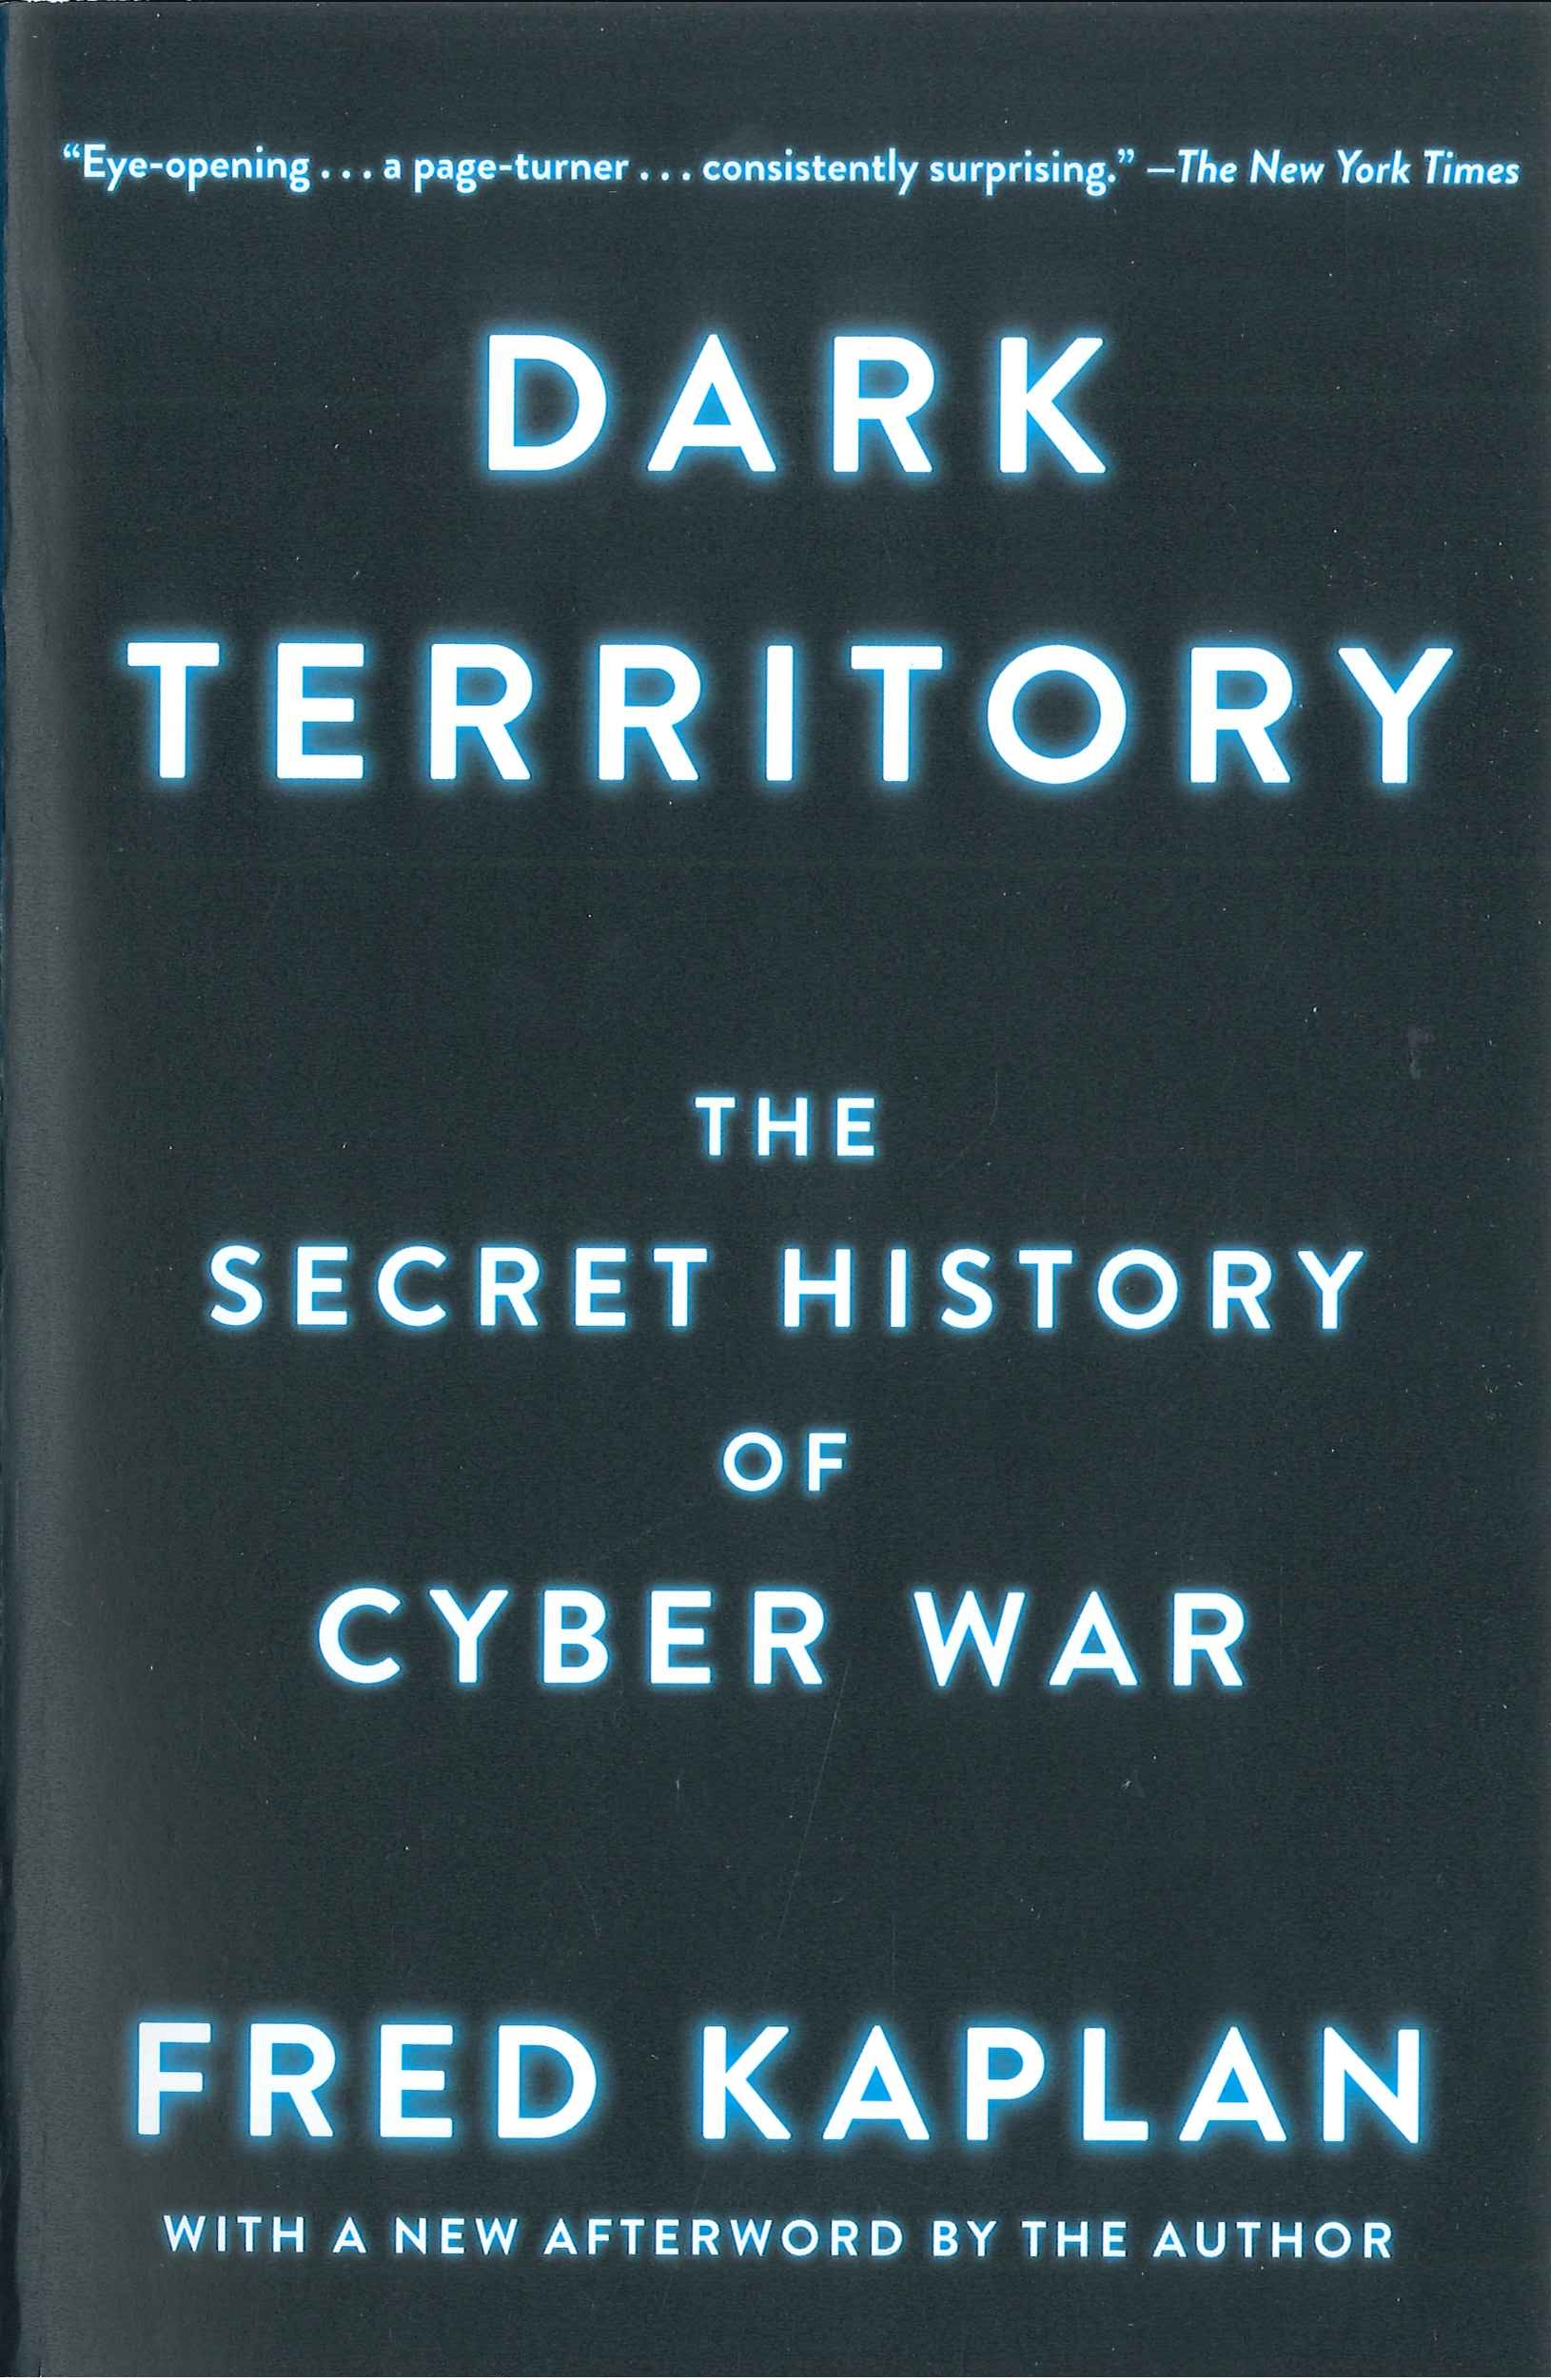 Dark territory:the secret history of cyber war